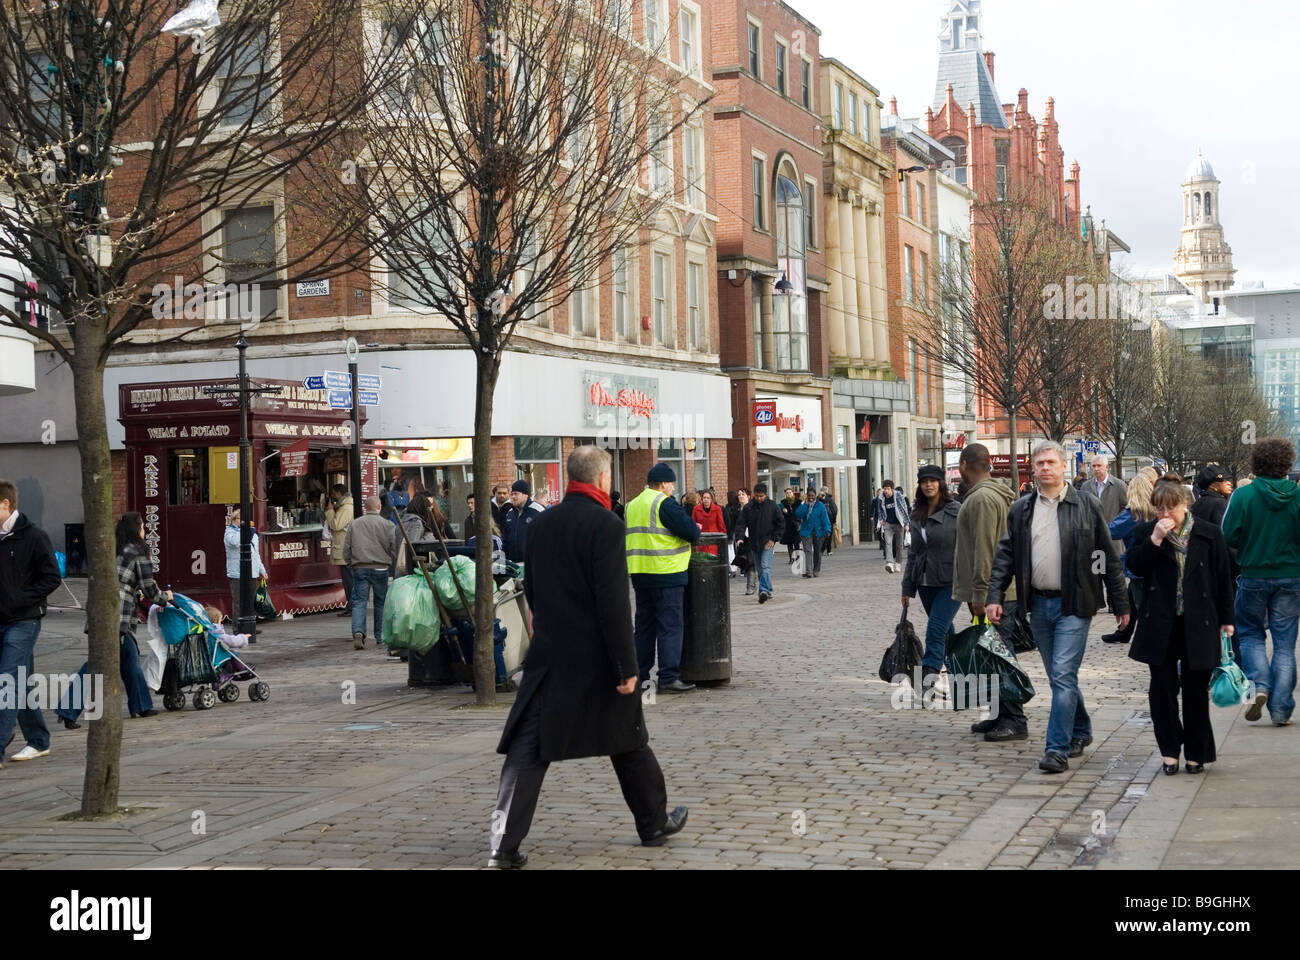 People walking in market street Manchester city centre UK - Stock Image